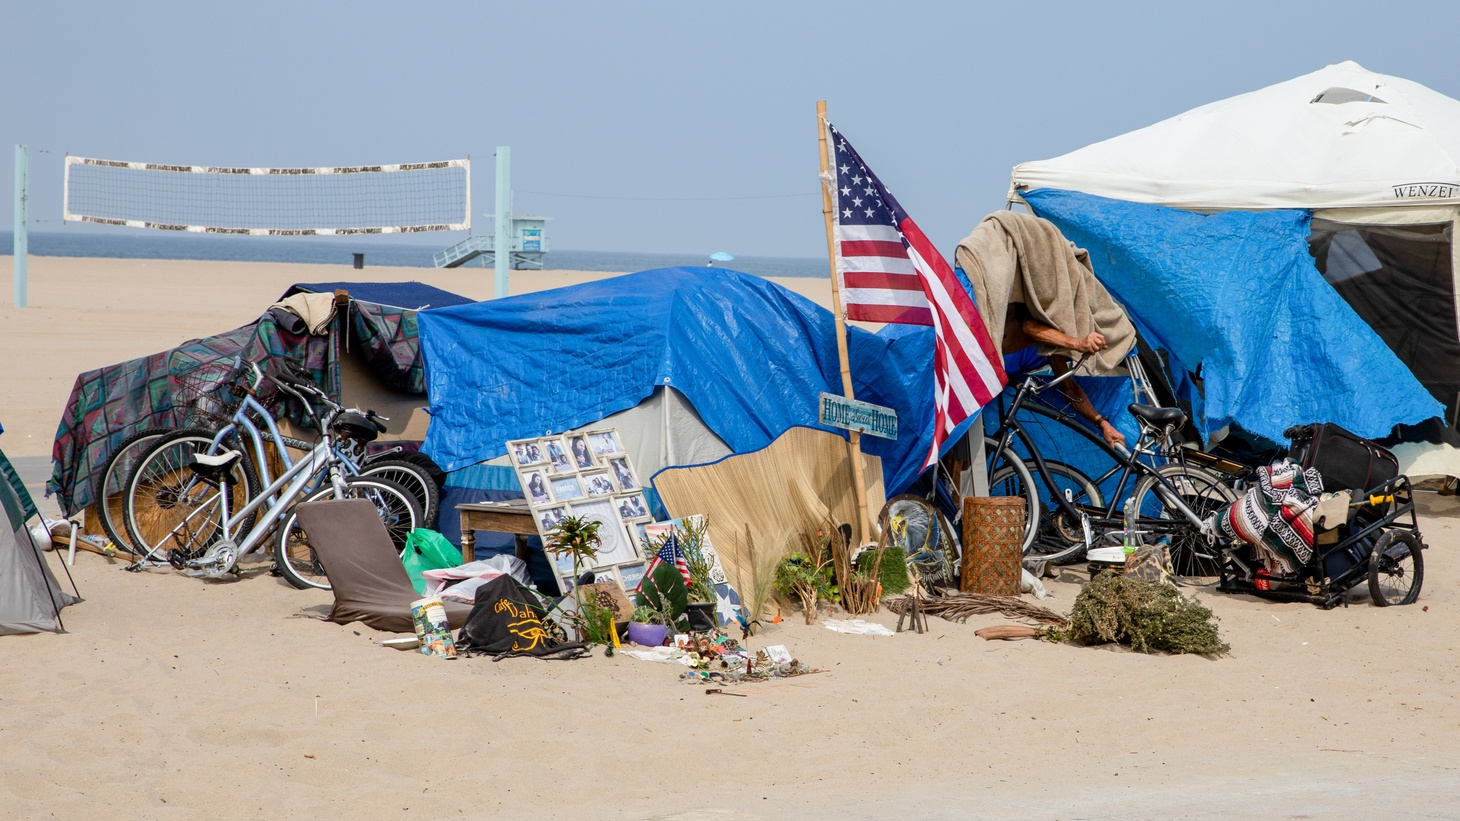 """Along the Venice boardwalk, an American flag with a sign reading """"home sweet home"""" is centered at the forefront of a homeless encampment. June 29, 2021. Photo by Zaydee Sanchez for KCRW."""